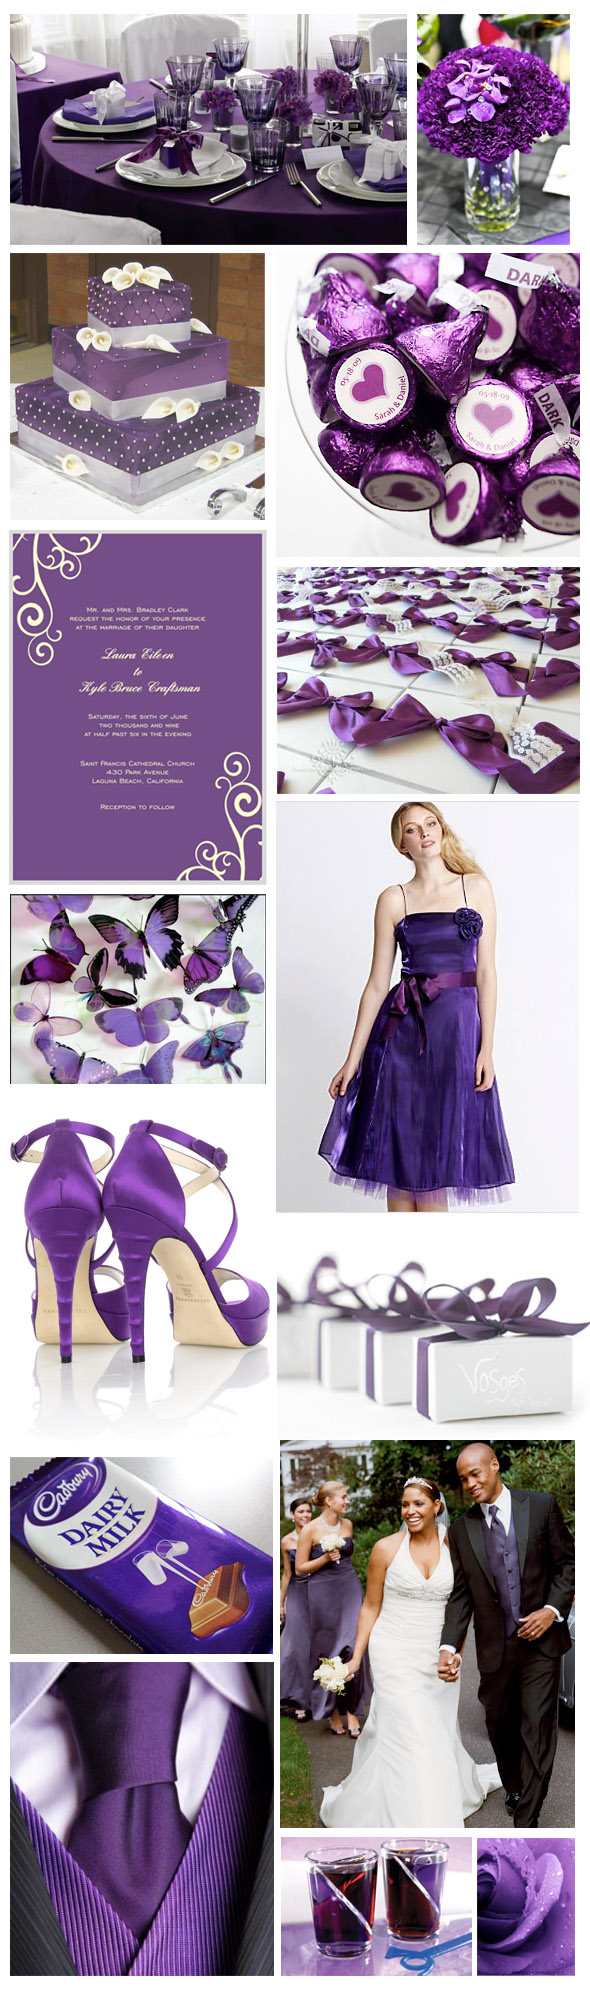 The Wedding Theme Wedding Theme Inspiration Purple Wedding And